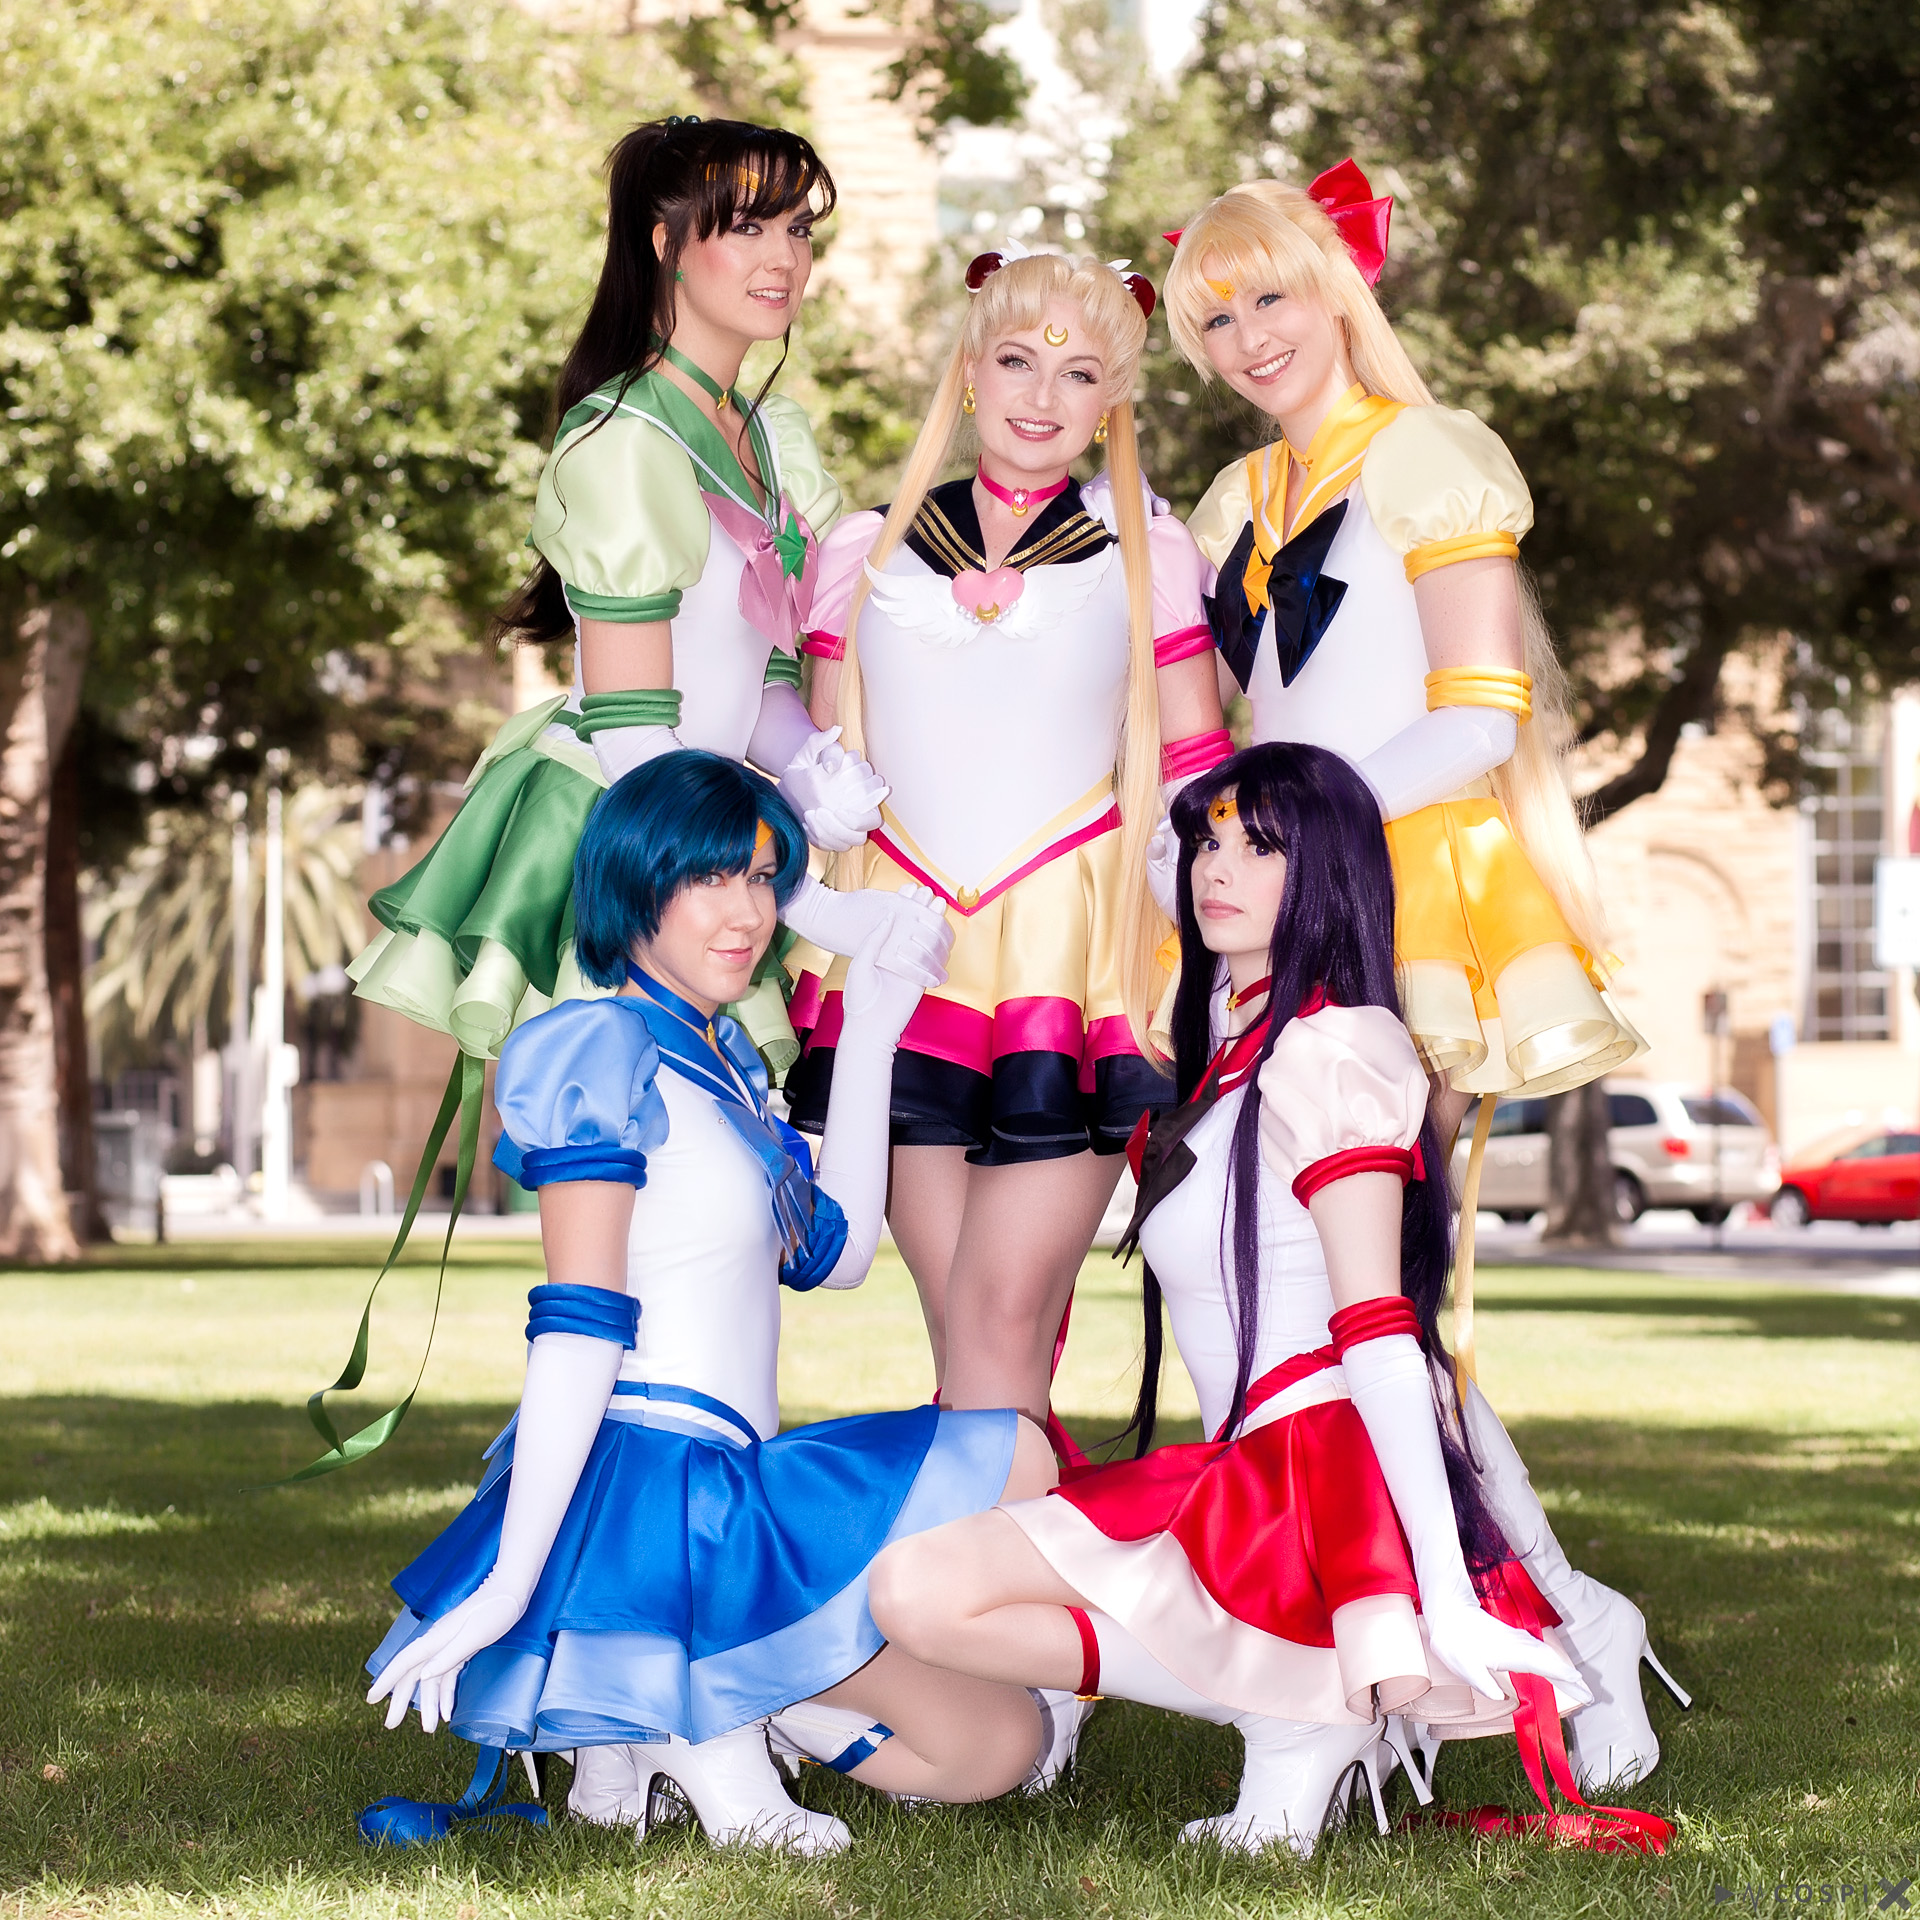 Cospix.net photo featuring DarkainMX, Sparkle Pipsi, NyuNyu Cosplay, and DaydreamerNessa